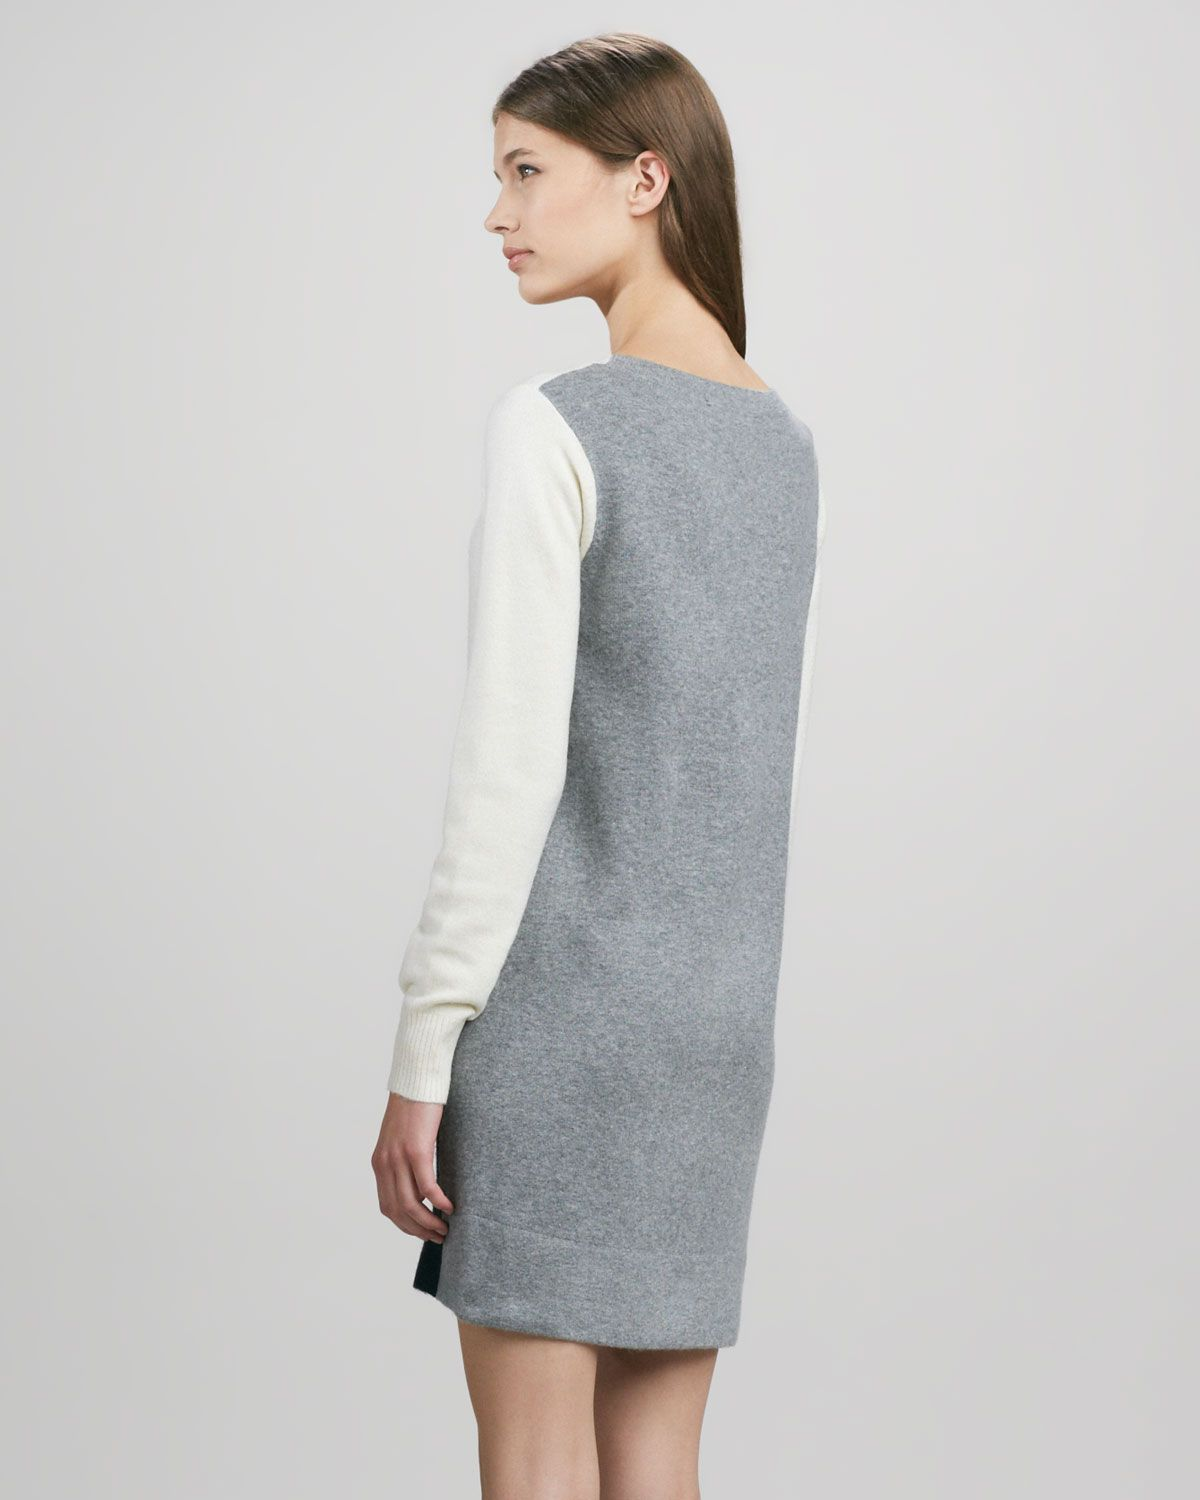 french connection marie long sleeve keyhole dress   Luxury Hotels